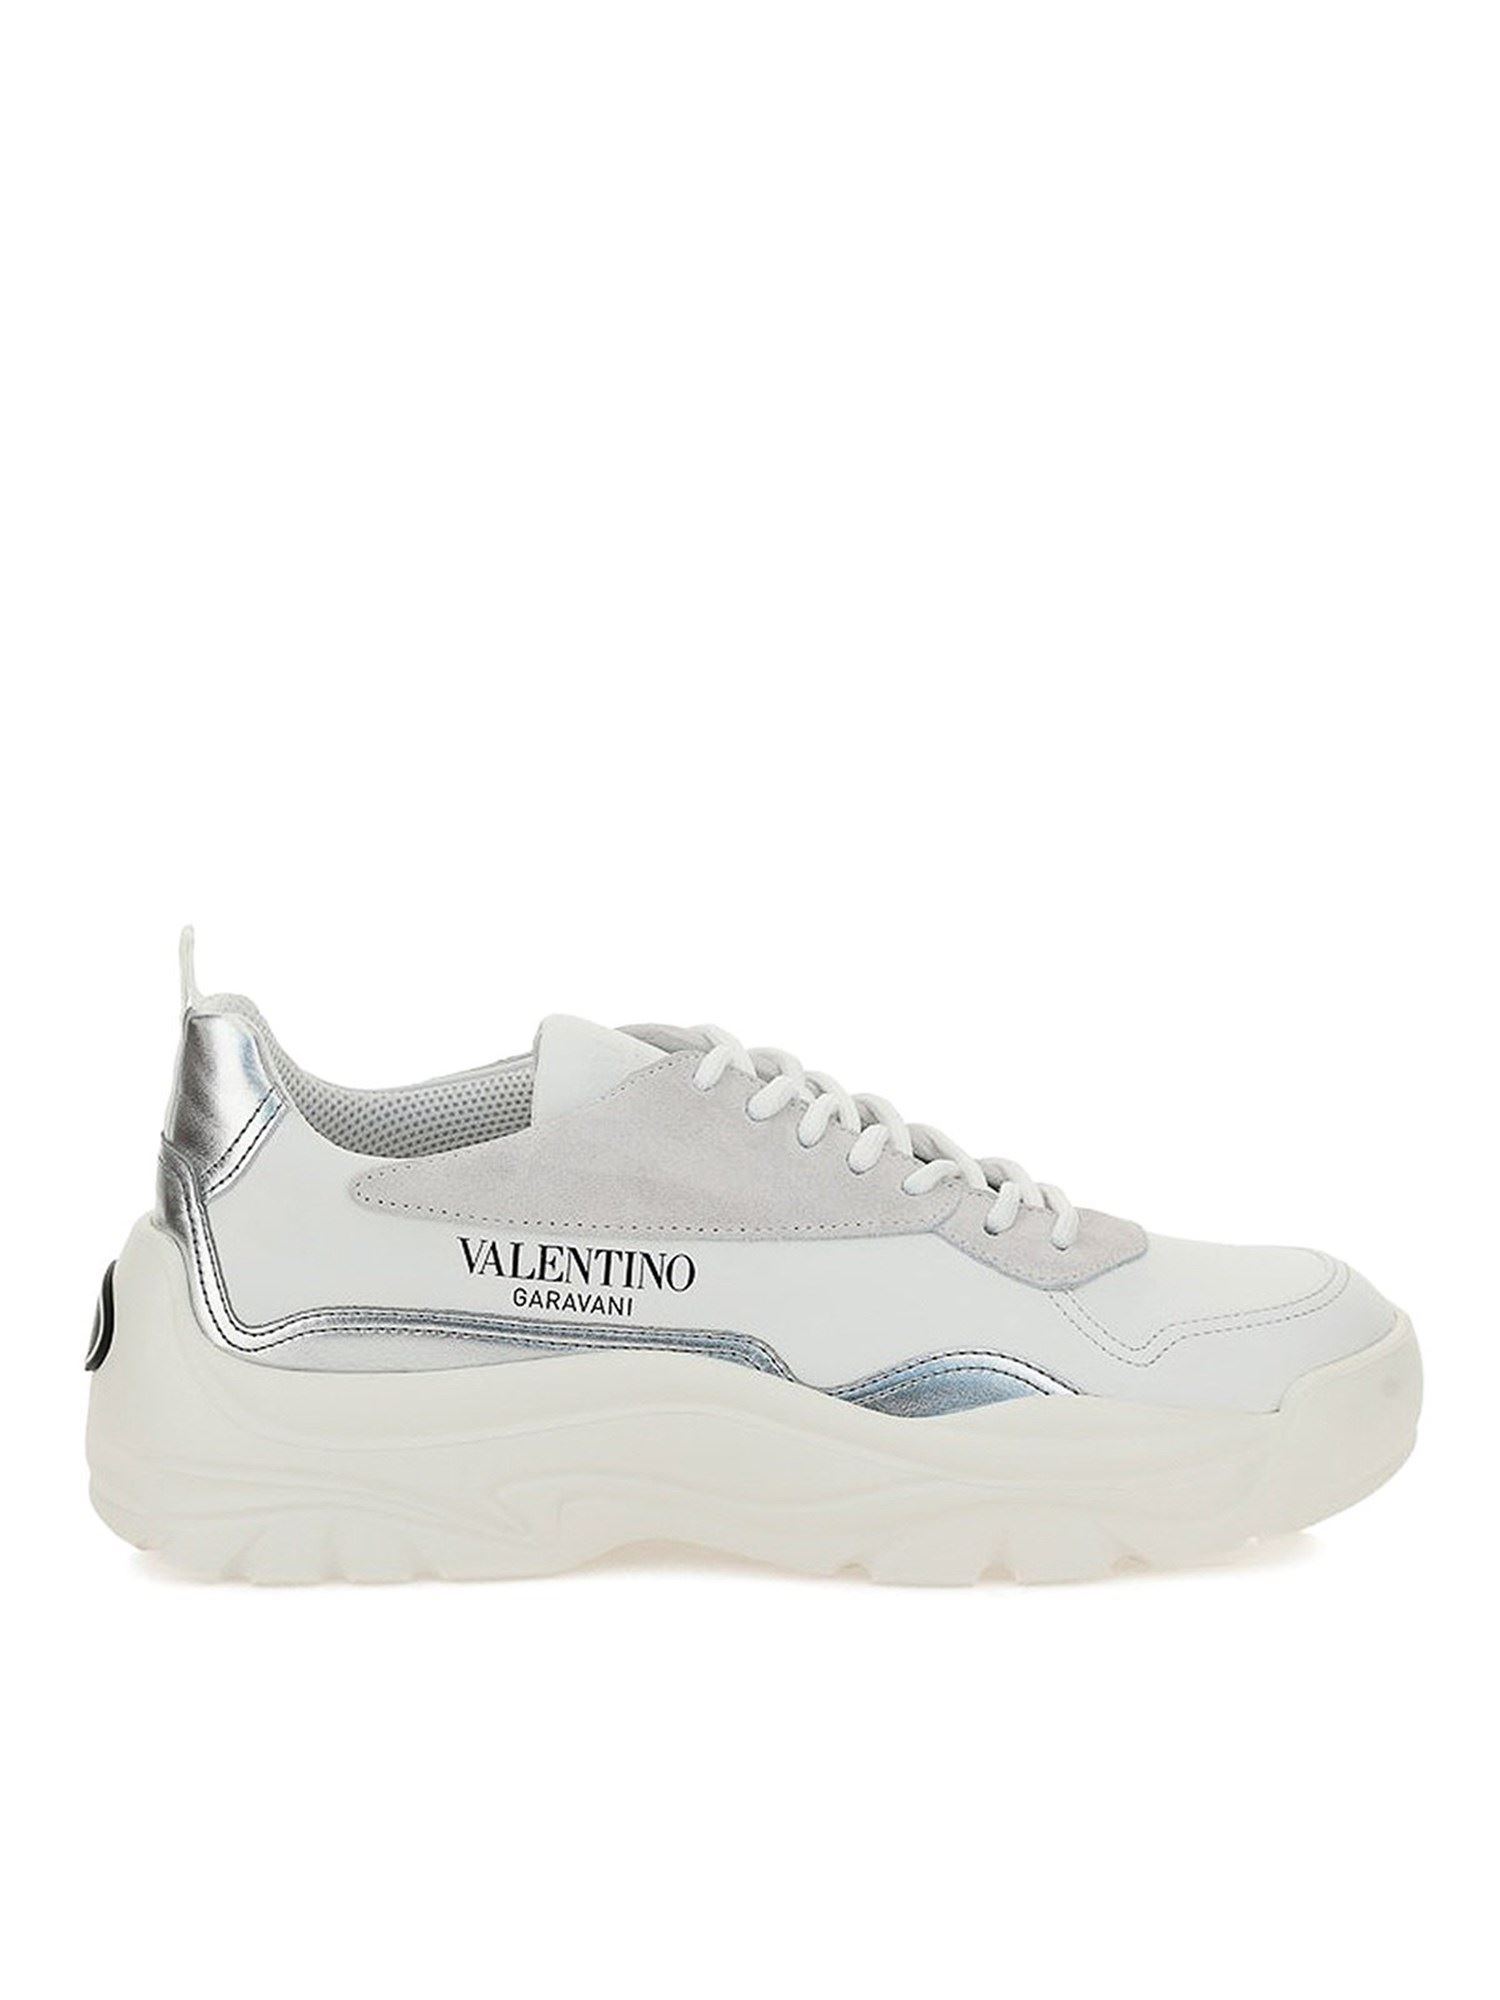 Valentino GUMBOY SNEAKERS IN WHITE